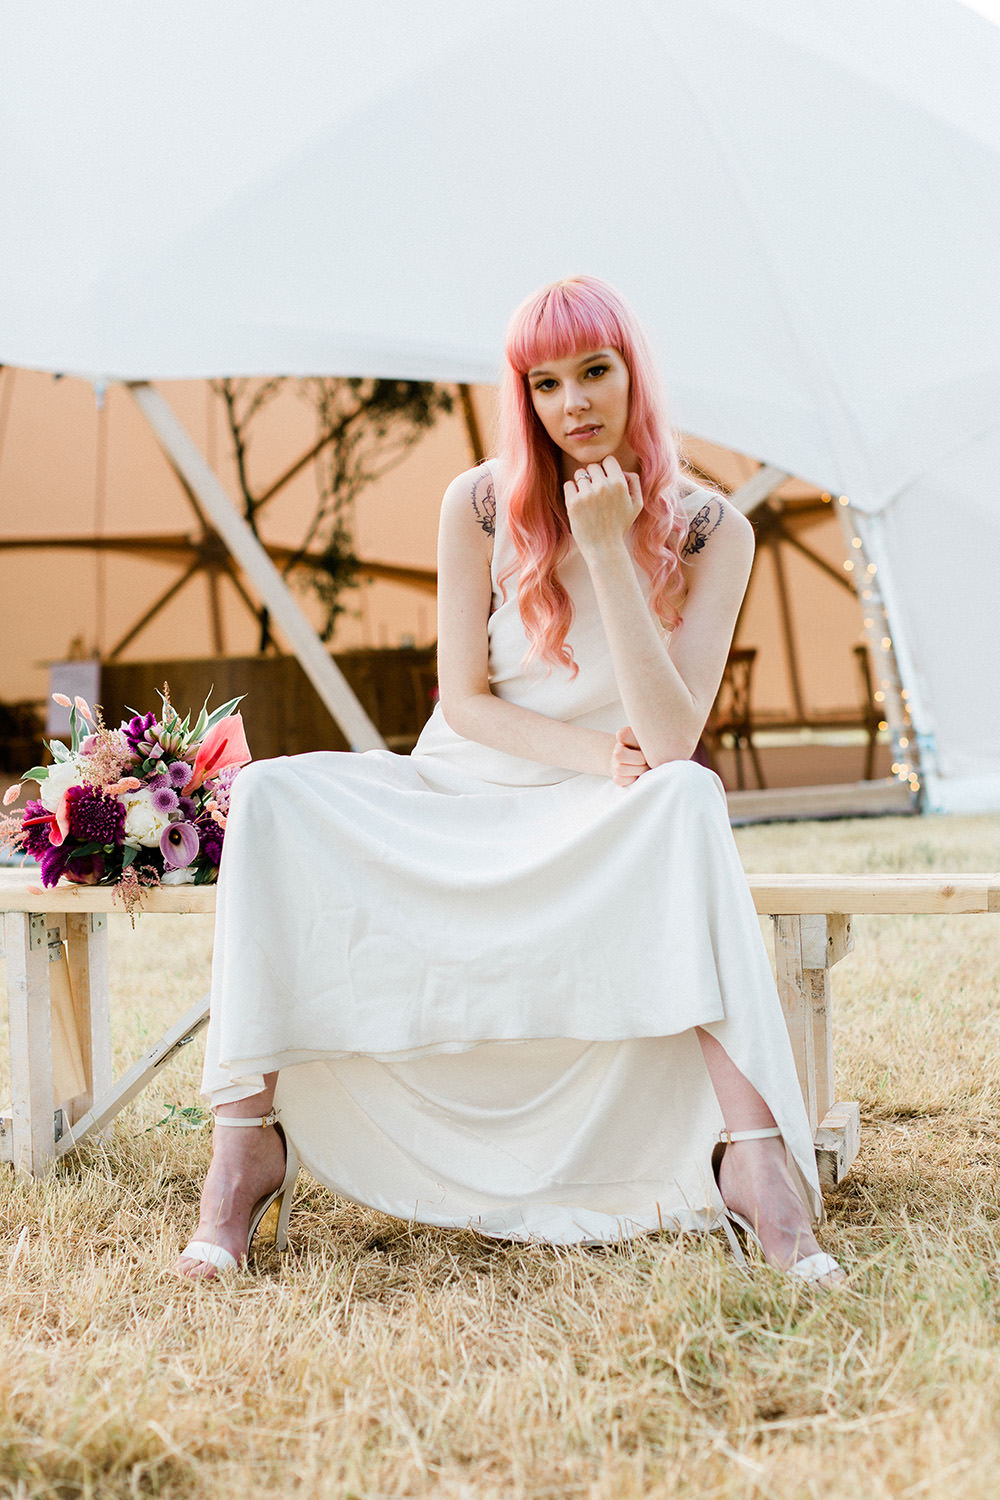 Bride Bridal Dress Gown Modern Sleek Low Cowl Back Hair Fringe Bangs Pink Geodome Wedding Ideas Louise Henesy Photography